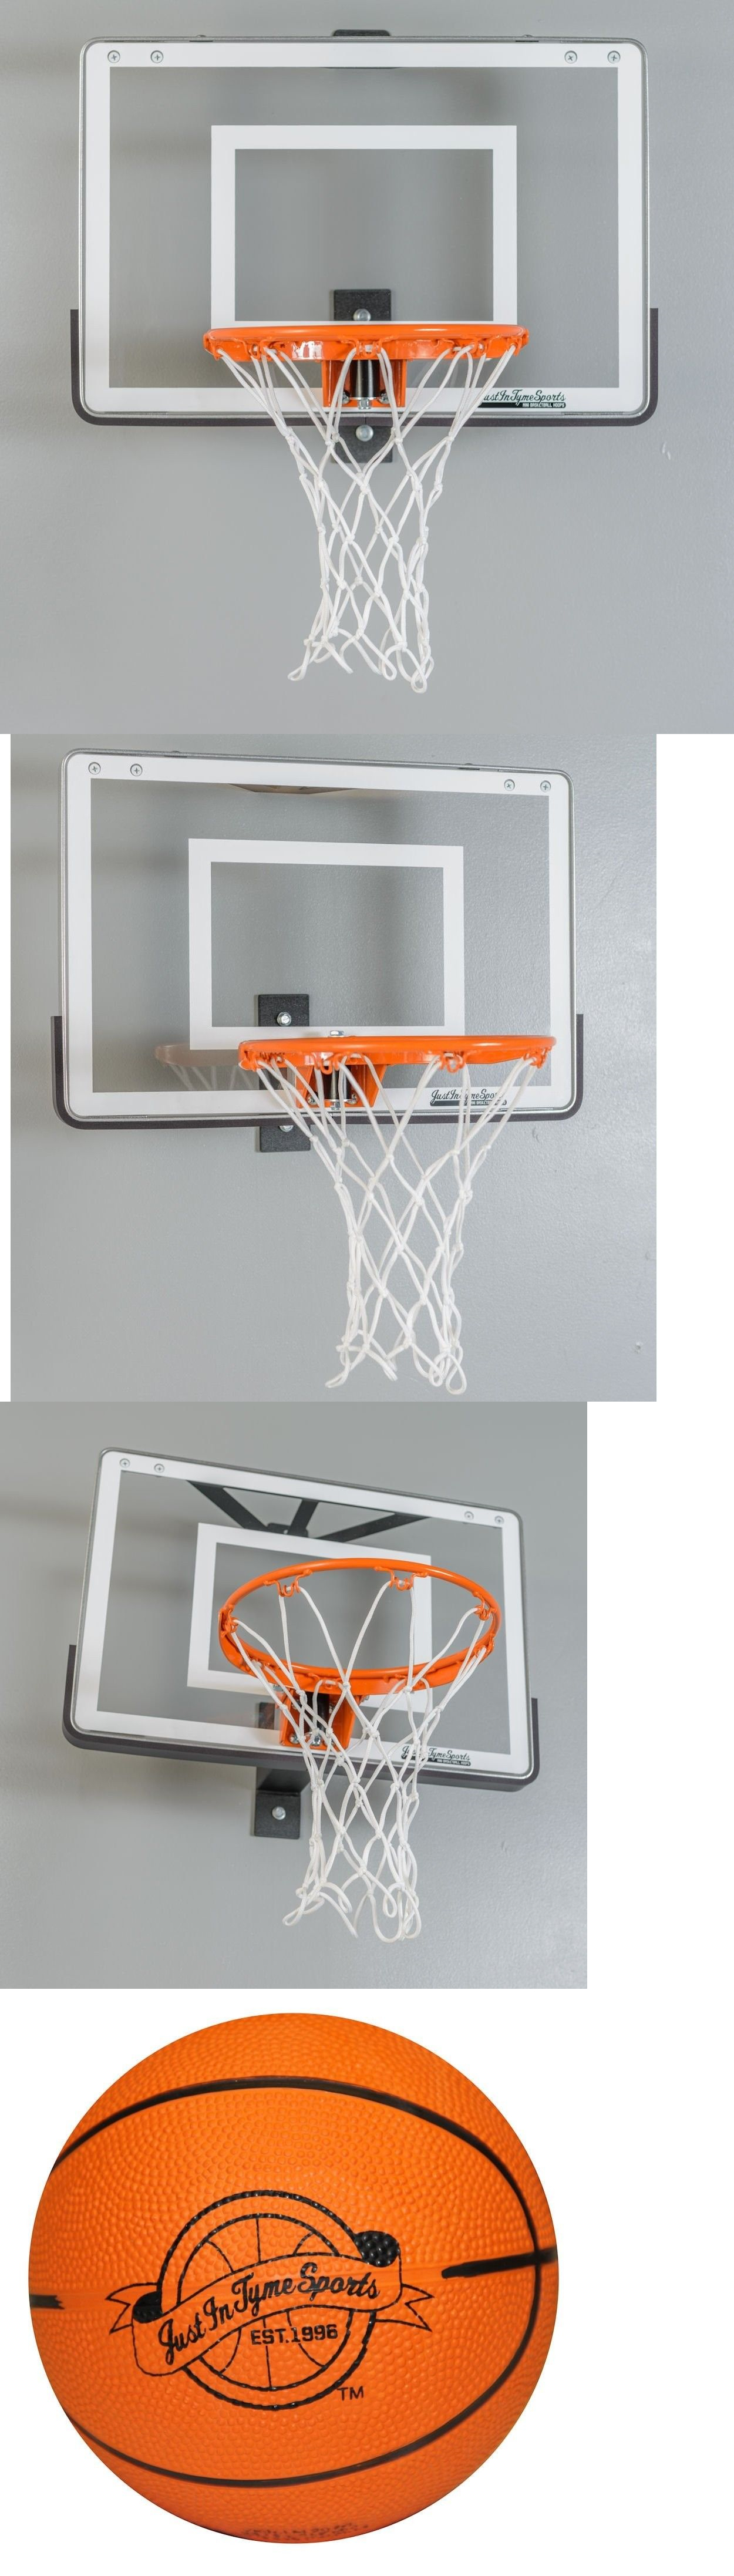 rims and nets 158962 mini basketball hoop goal backboard rim over